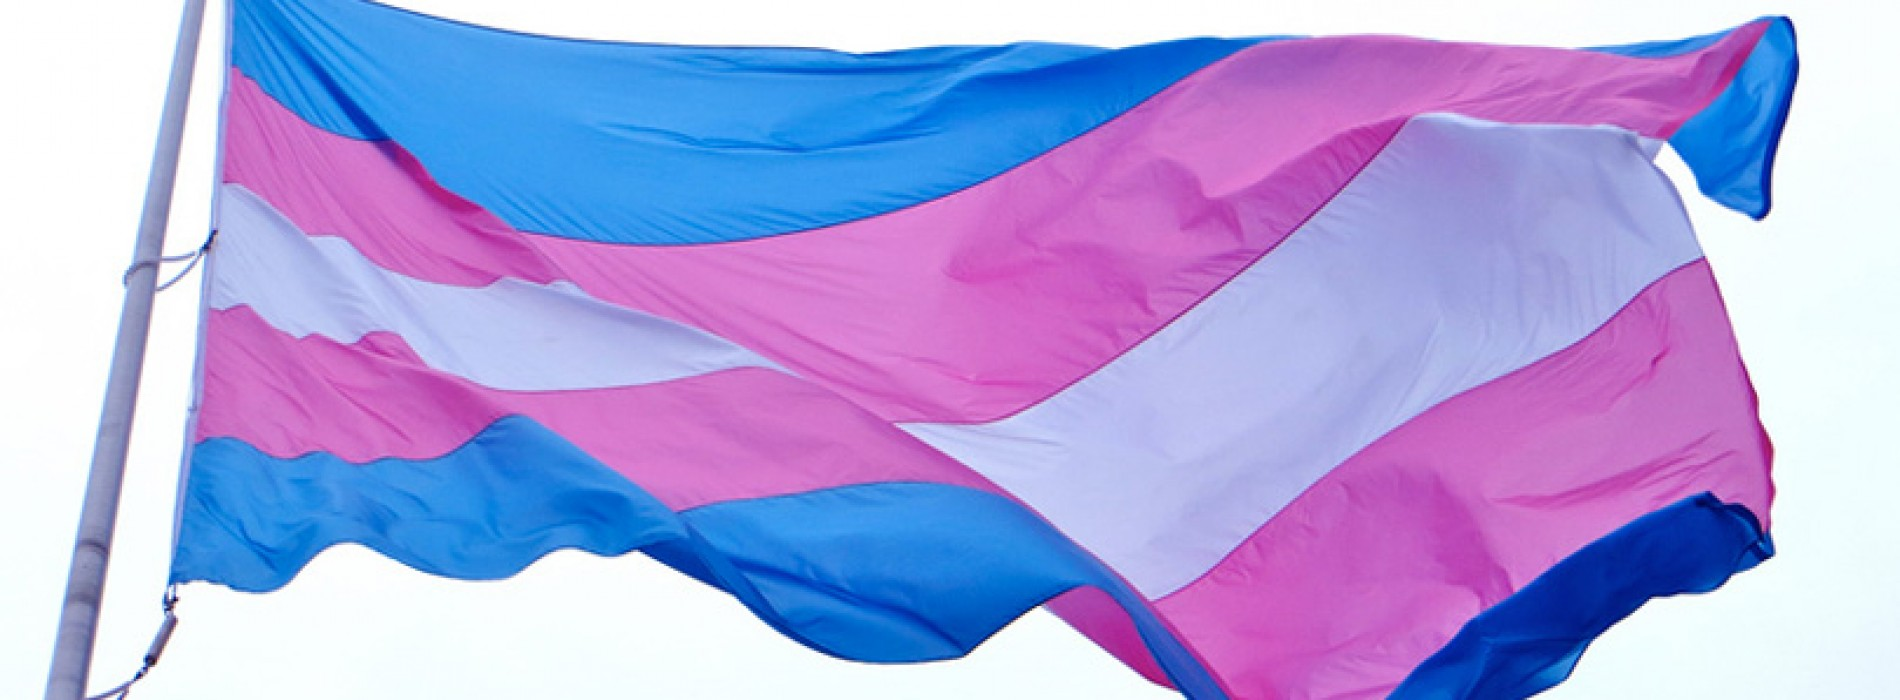 Raising Maine's minimum wage is a trans justice issue